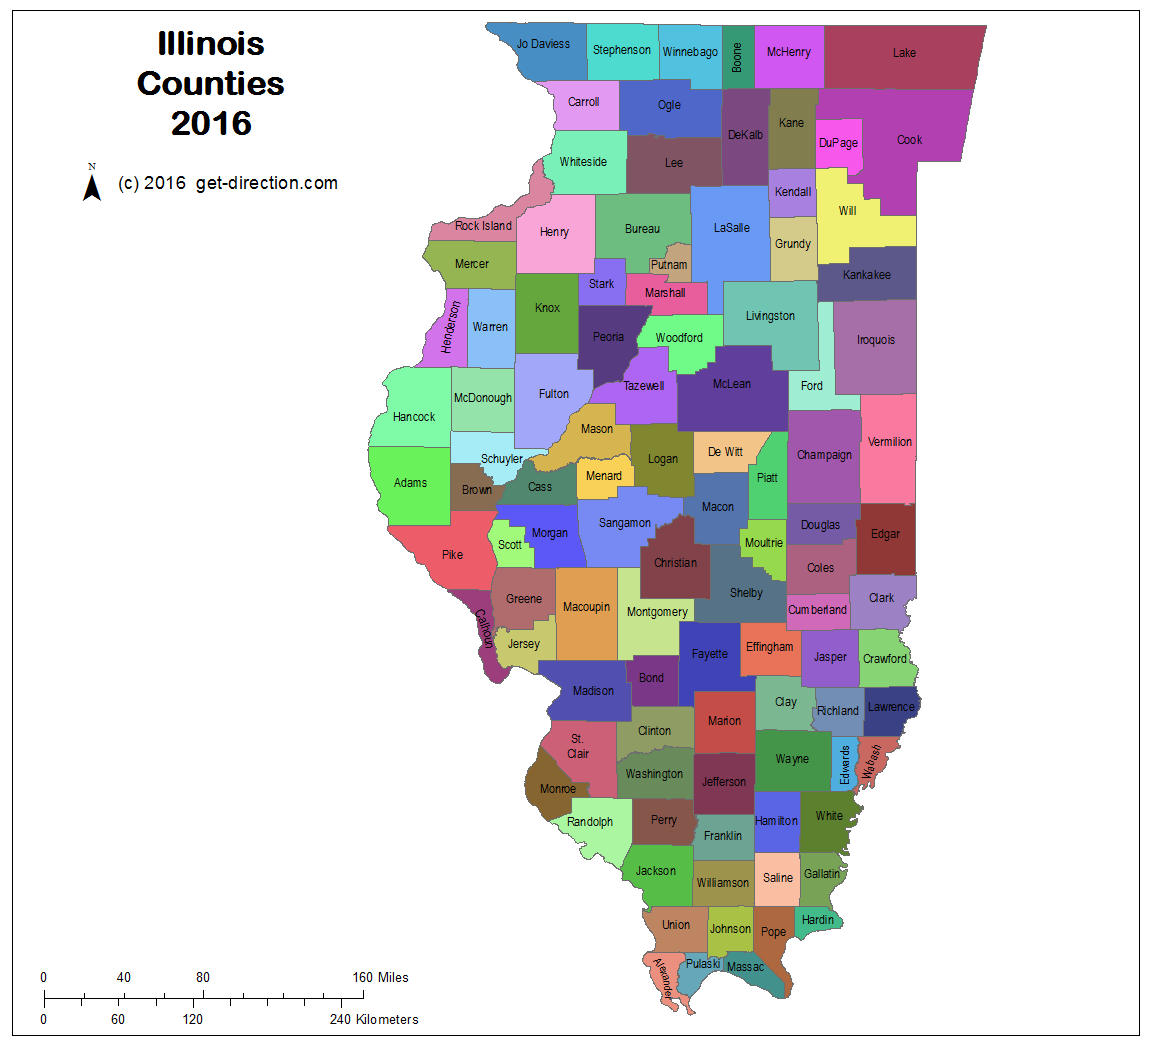 illinois-counties.png